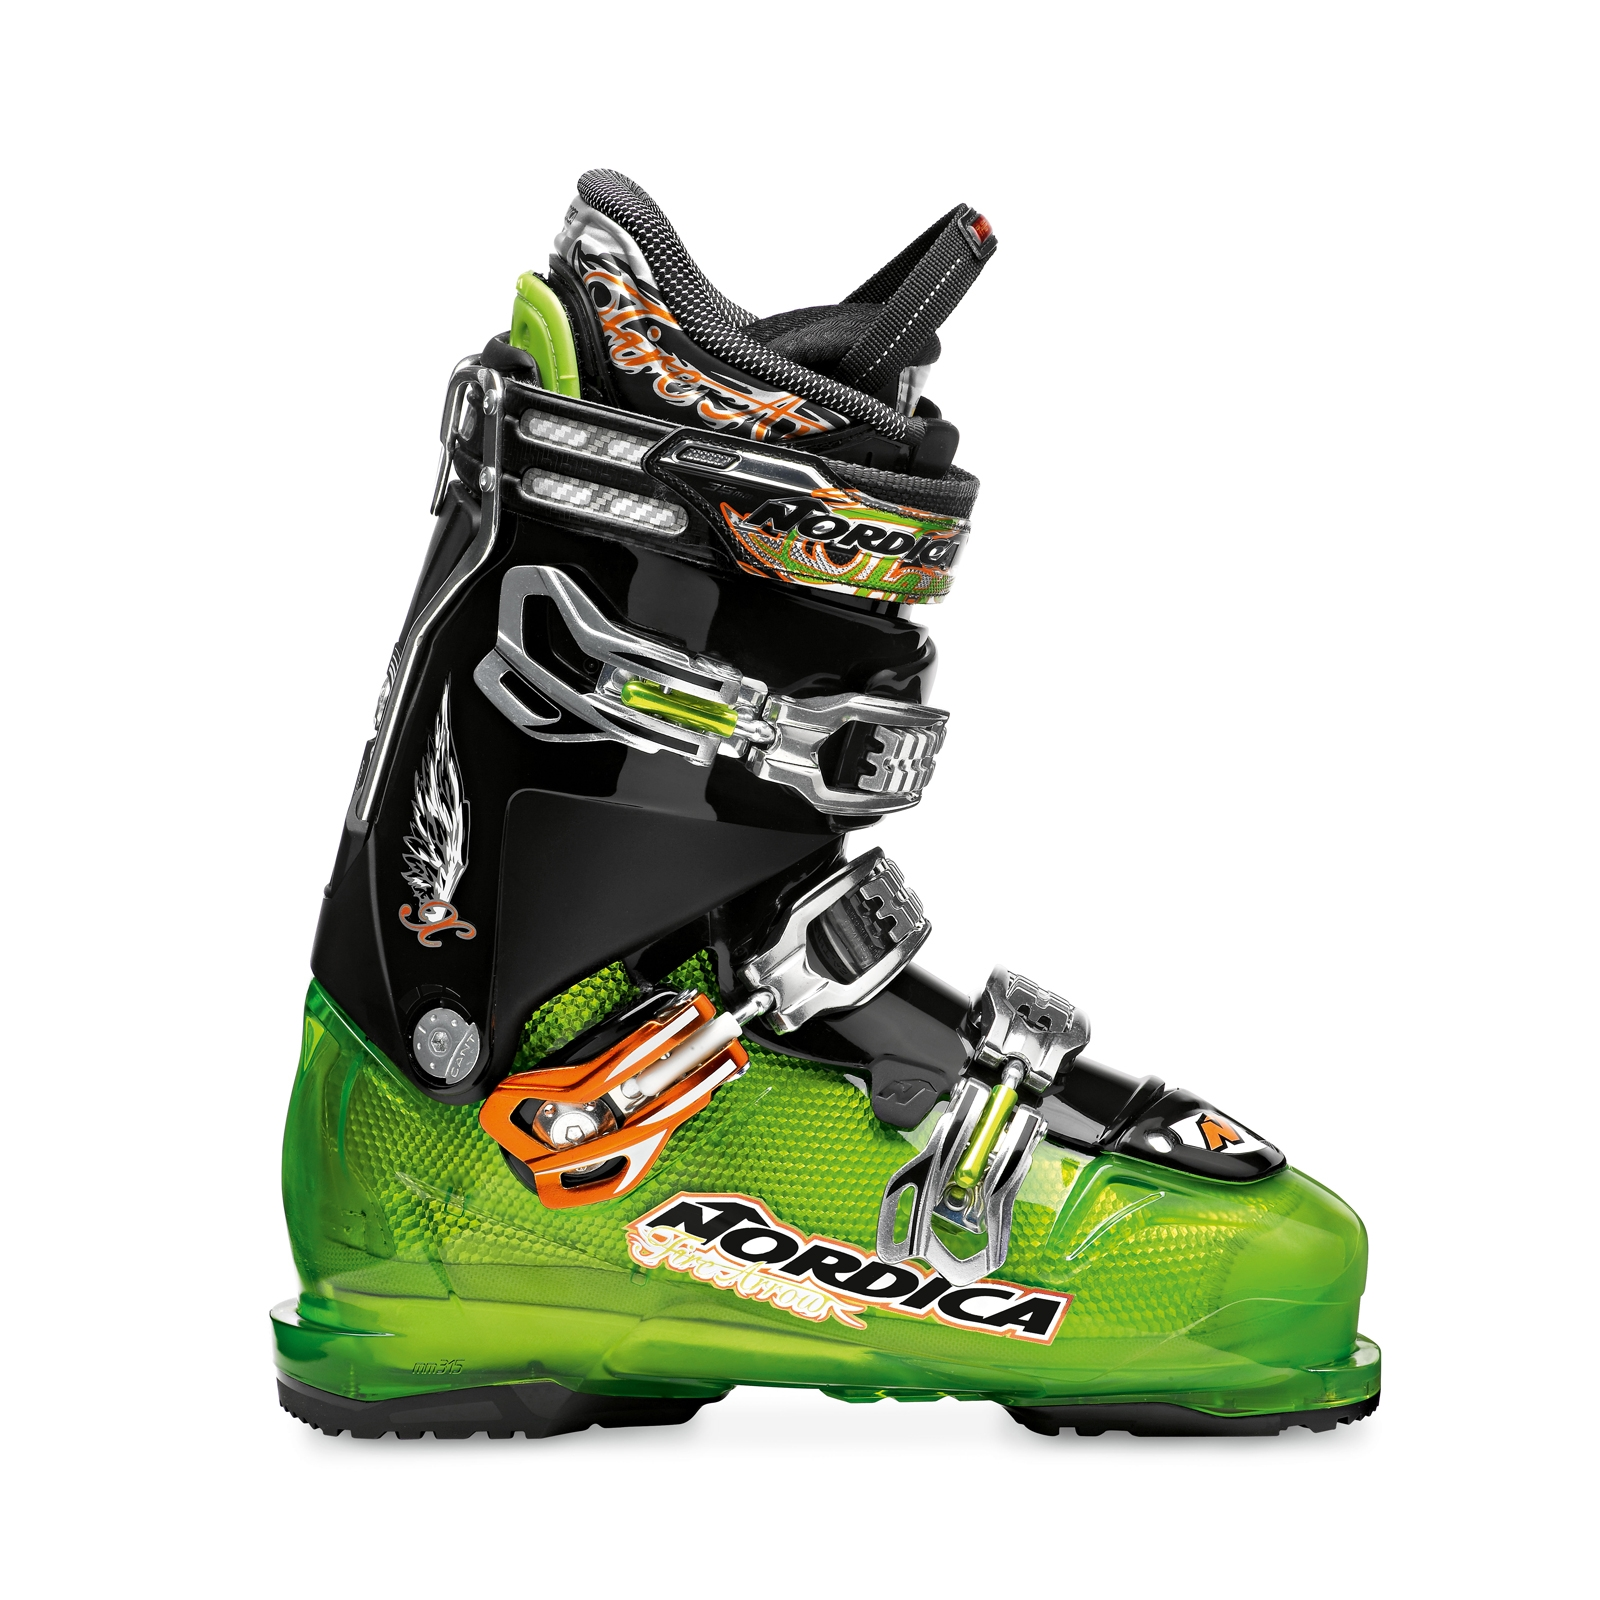 Buty Nordica Firearrow X FP115 - outlet : 29,5